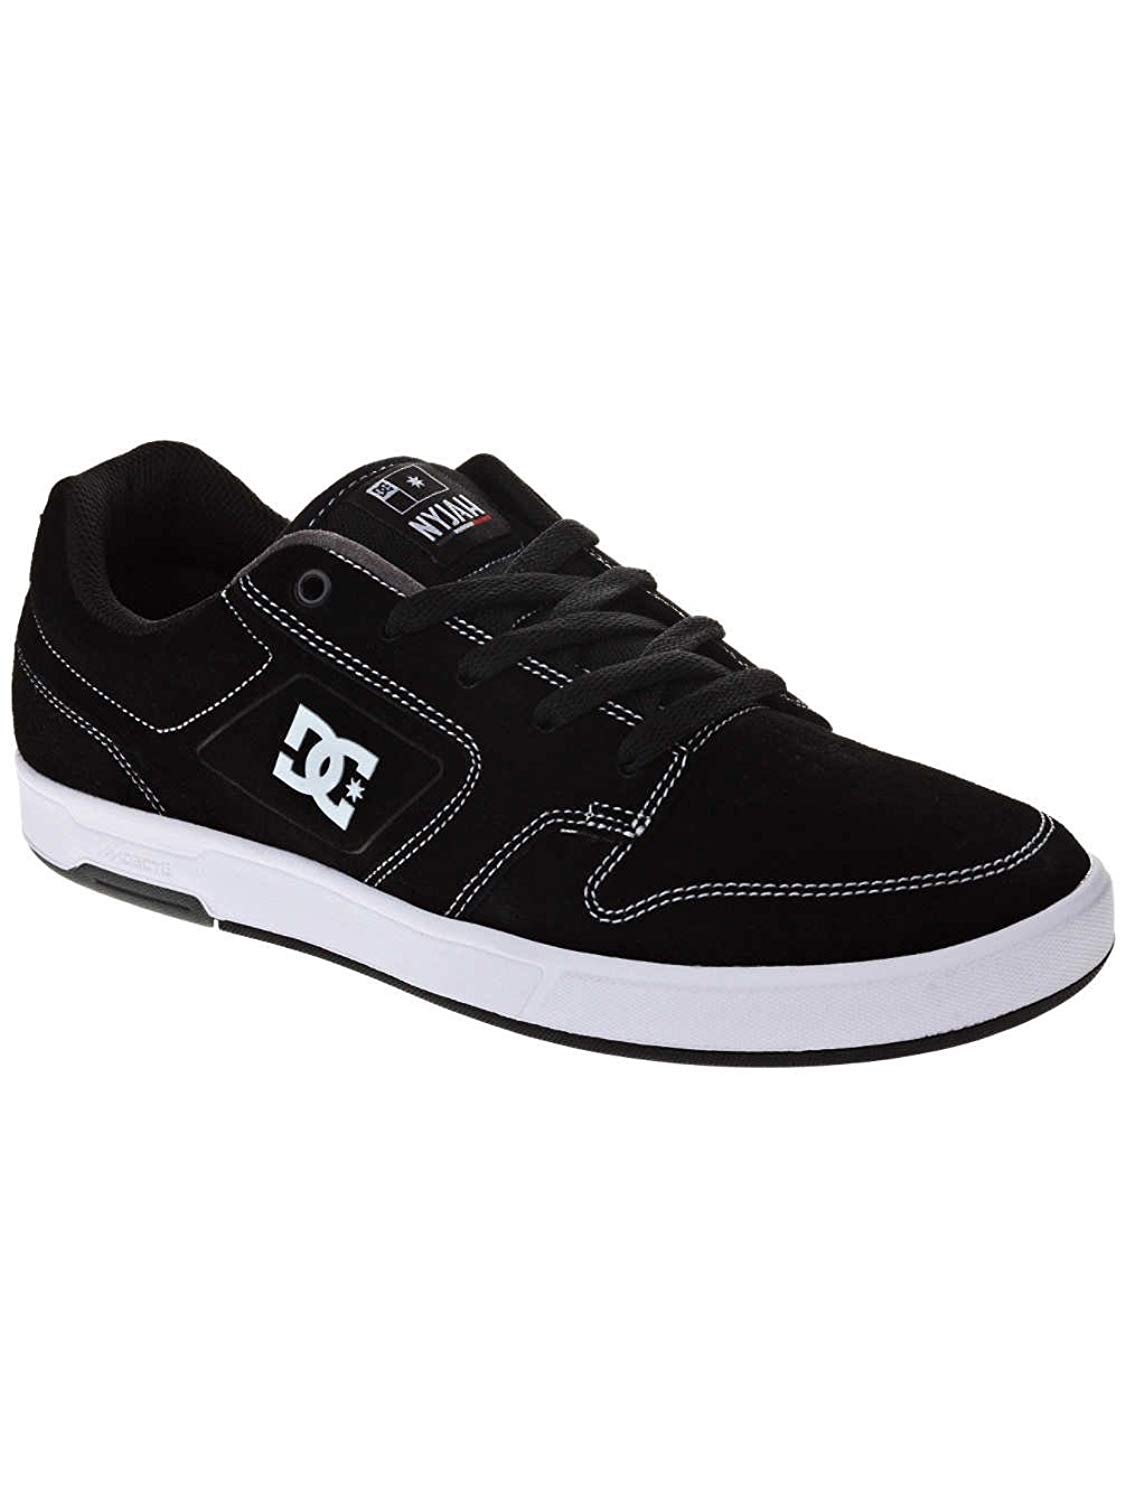 c9d06af2975a7 Get Quotations · DC Shoes Mens Dc Shoes Nyjah S - Skate Shoes - Men - Us 7 -